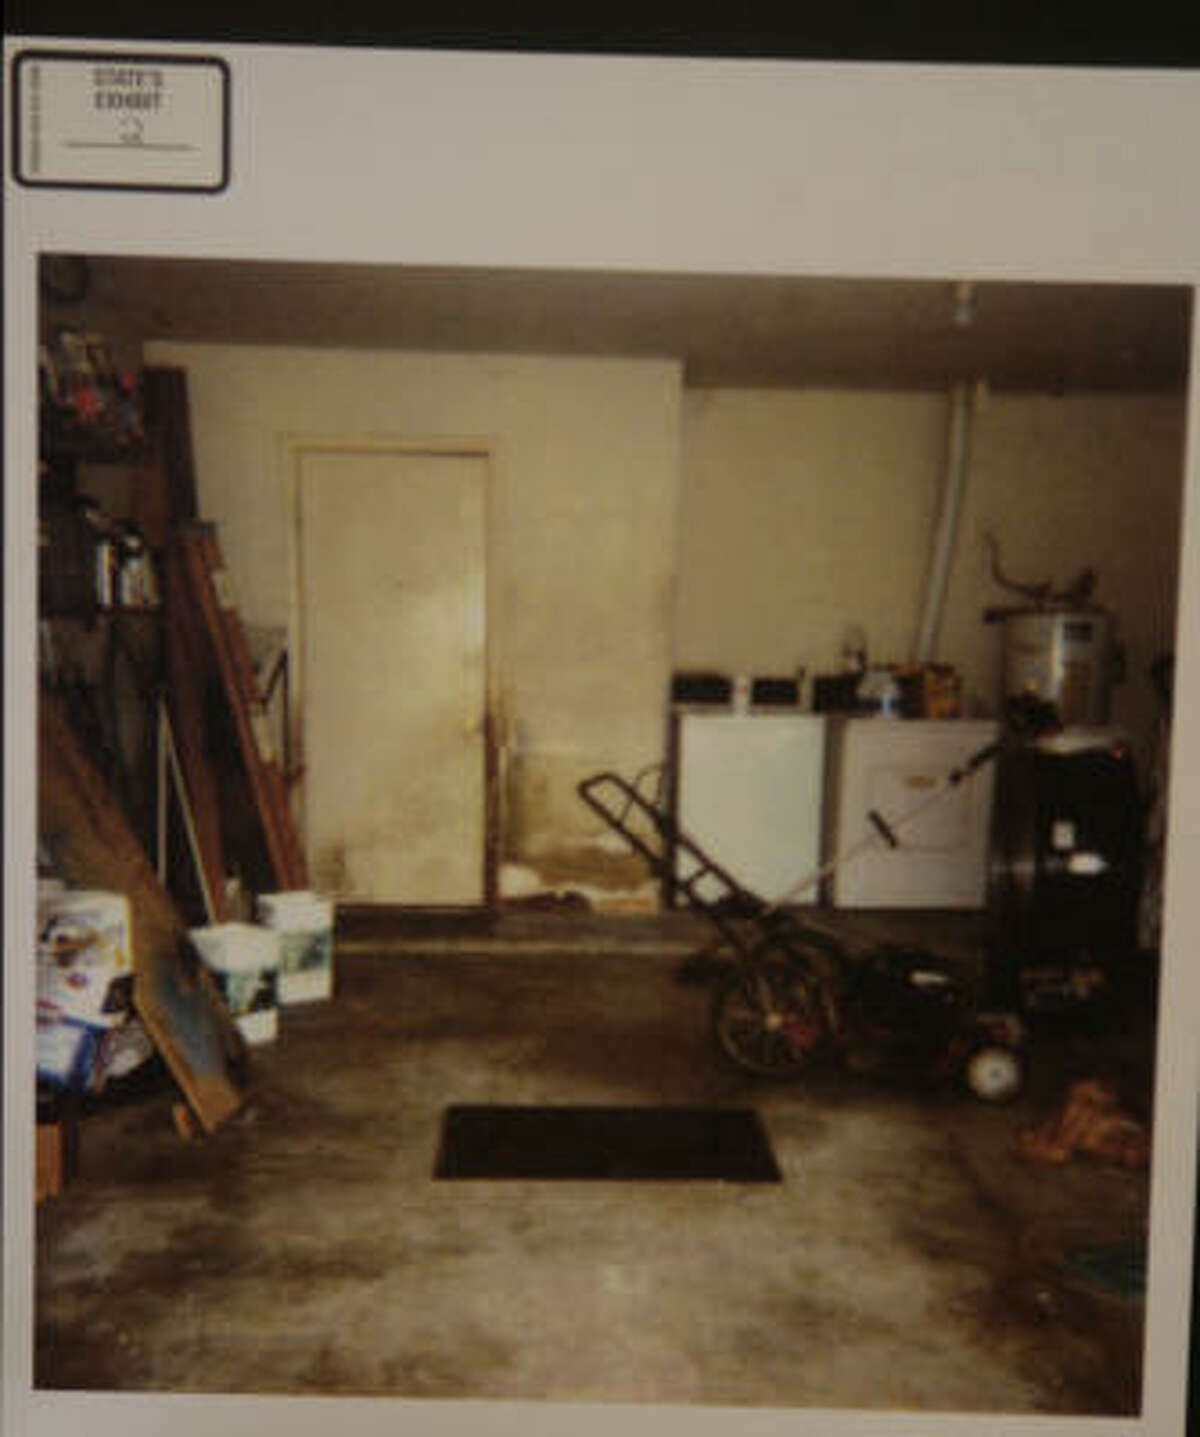 Court room photo placed into evidence showing the windowless garage that two brothers were forced to live in on cots by their foster parents, Barbara Dean Baldwin and Tommy Lee Baldwin, four years ago in Fort Bend County.